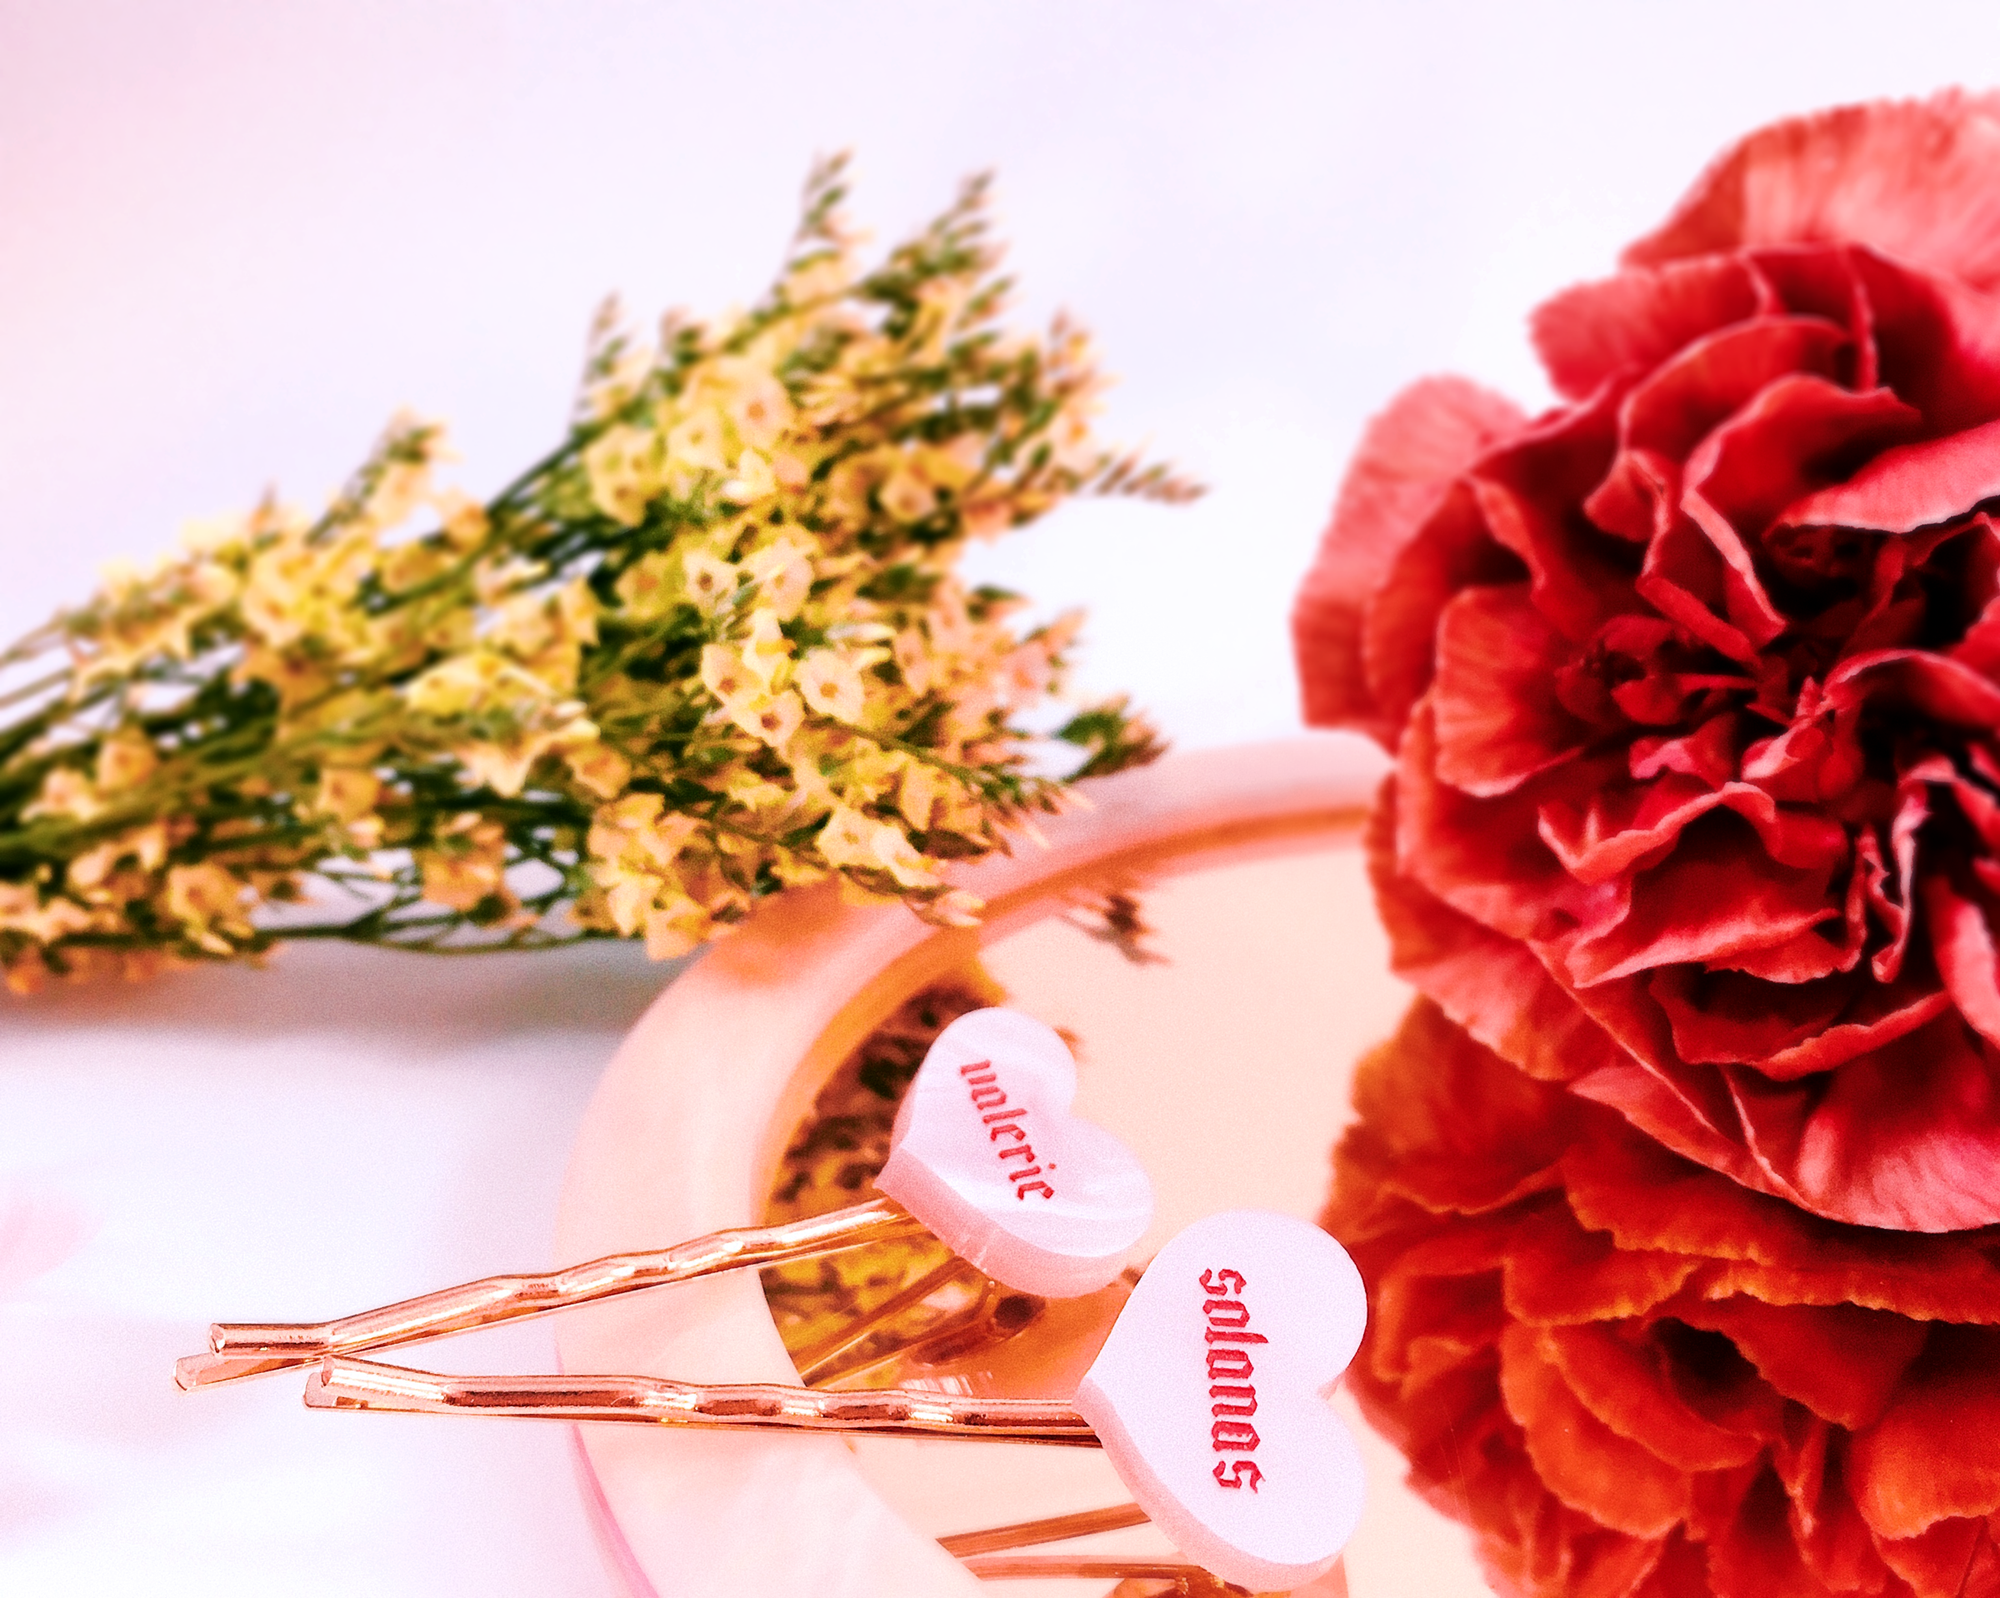 Image of Personalized hairpins